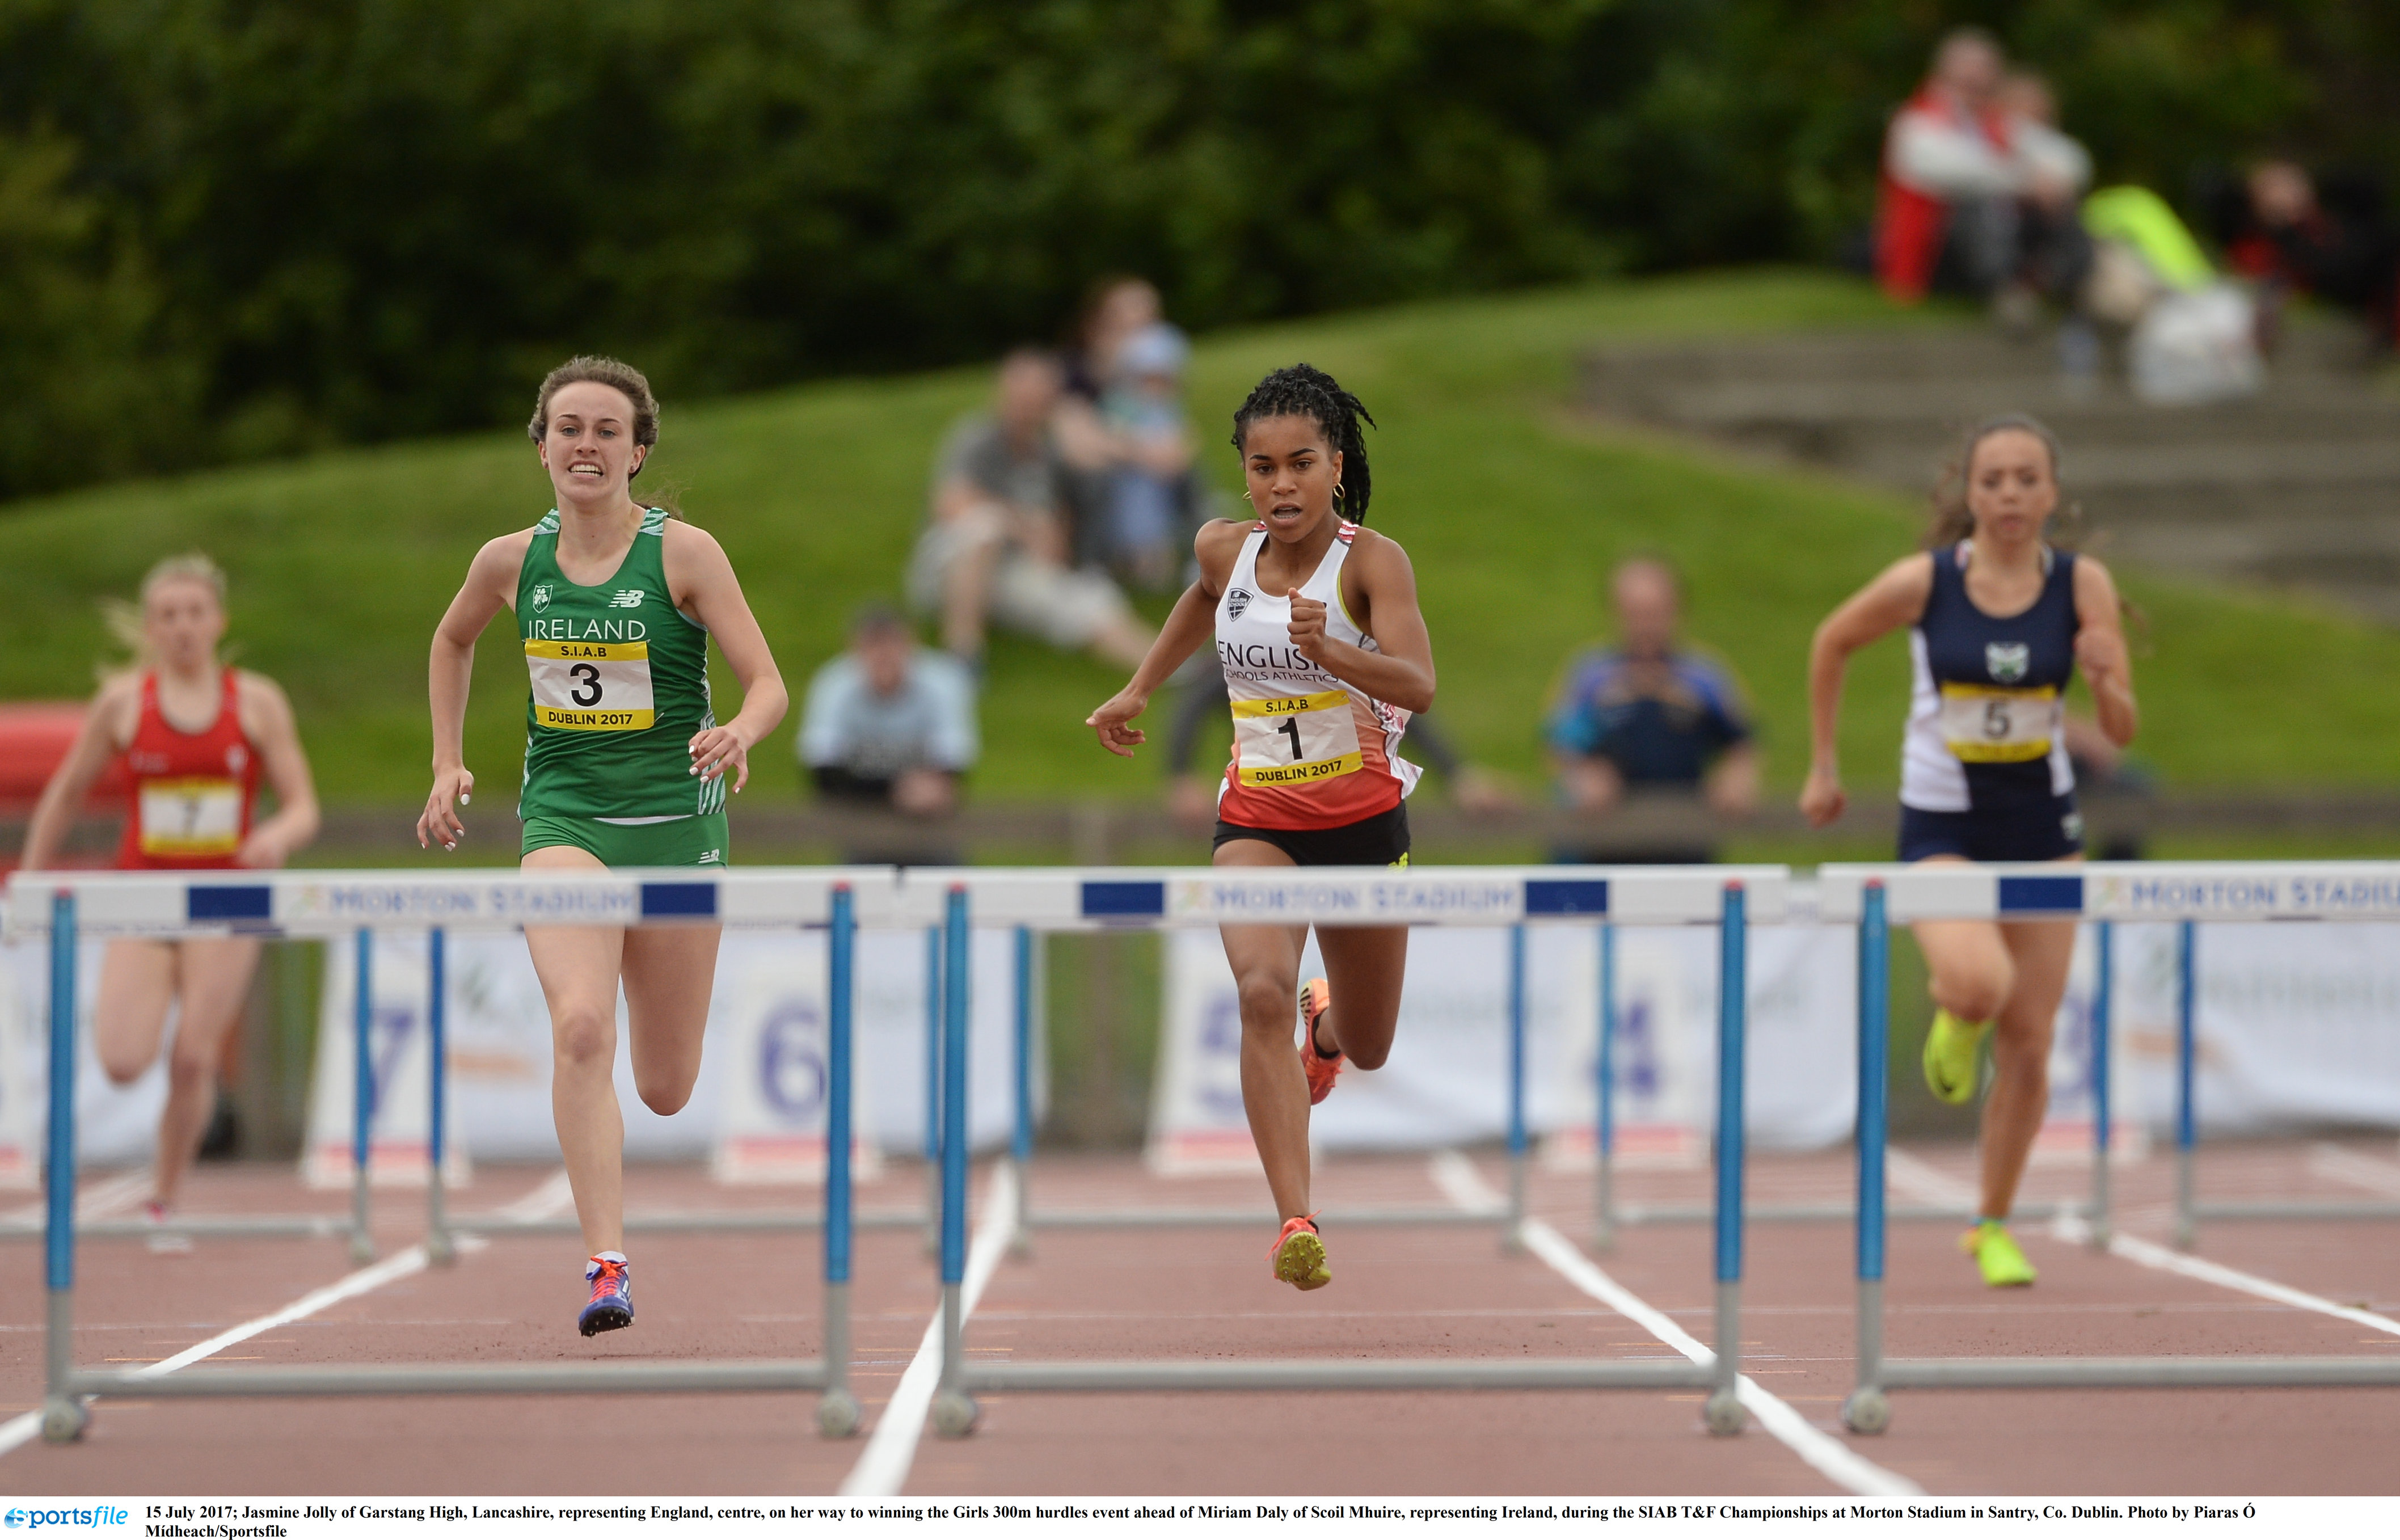 Selections for the SIAB Track and Field Championships in Swansea